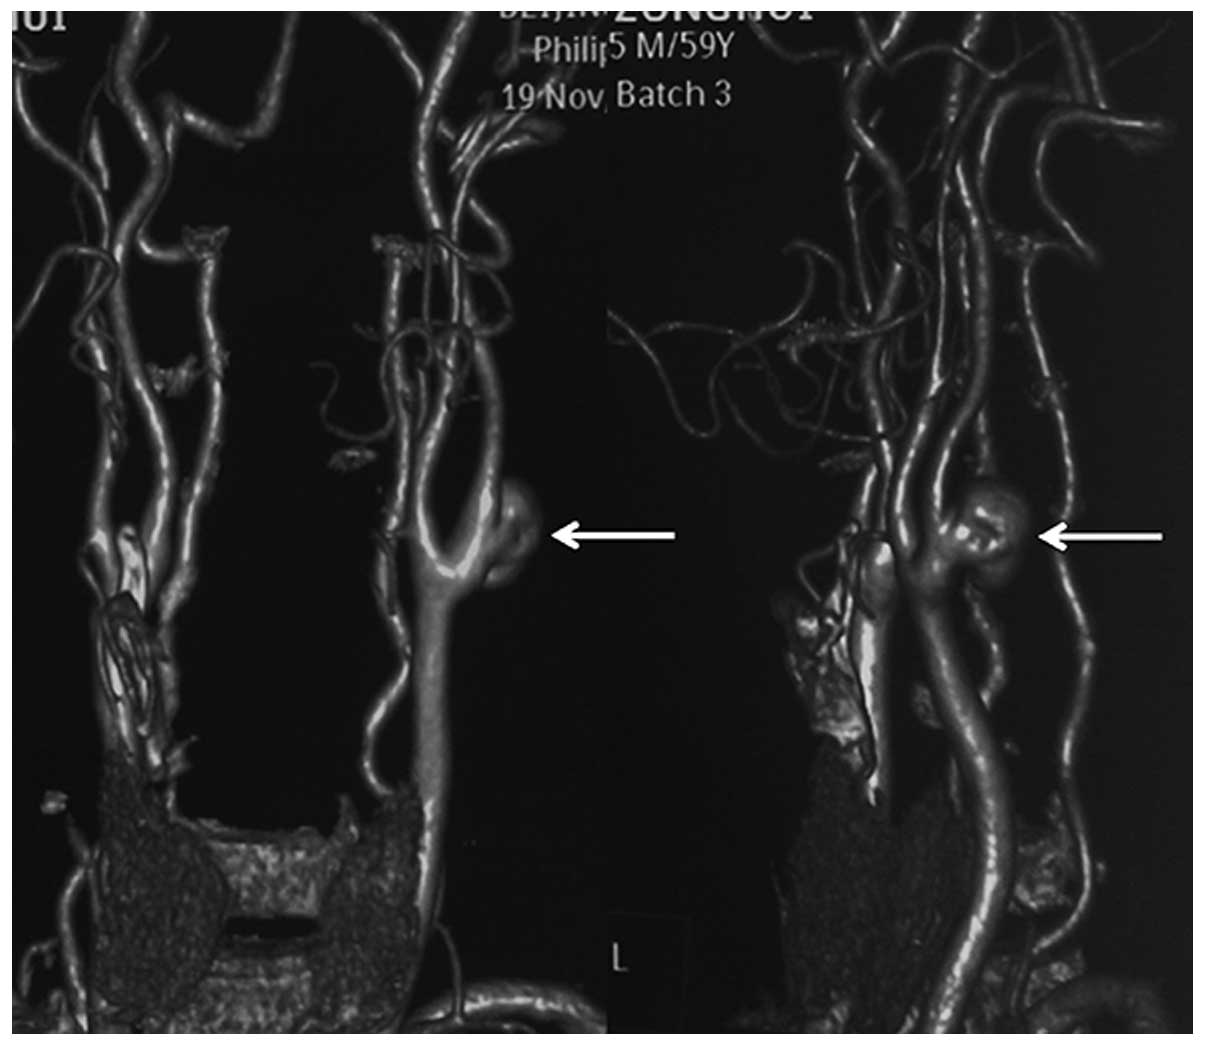 Management of extracranial carotid artery aneurysm: A report of ...